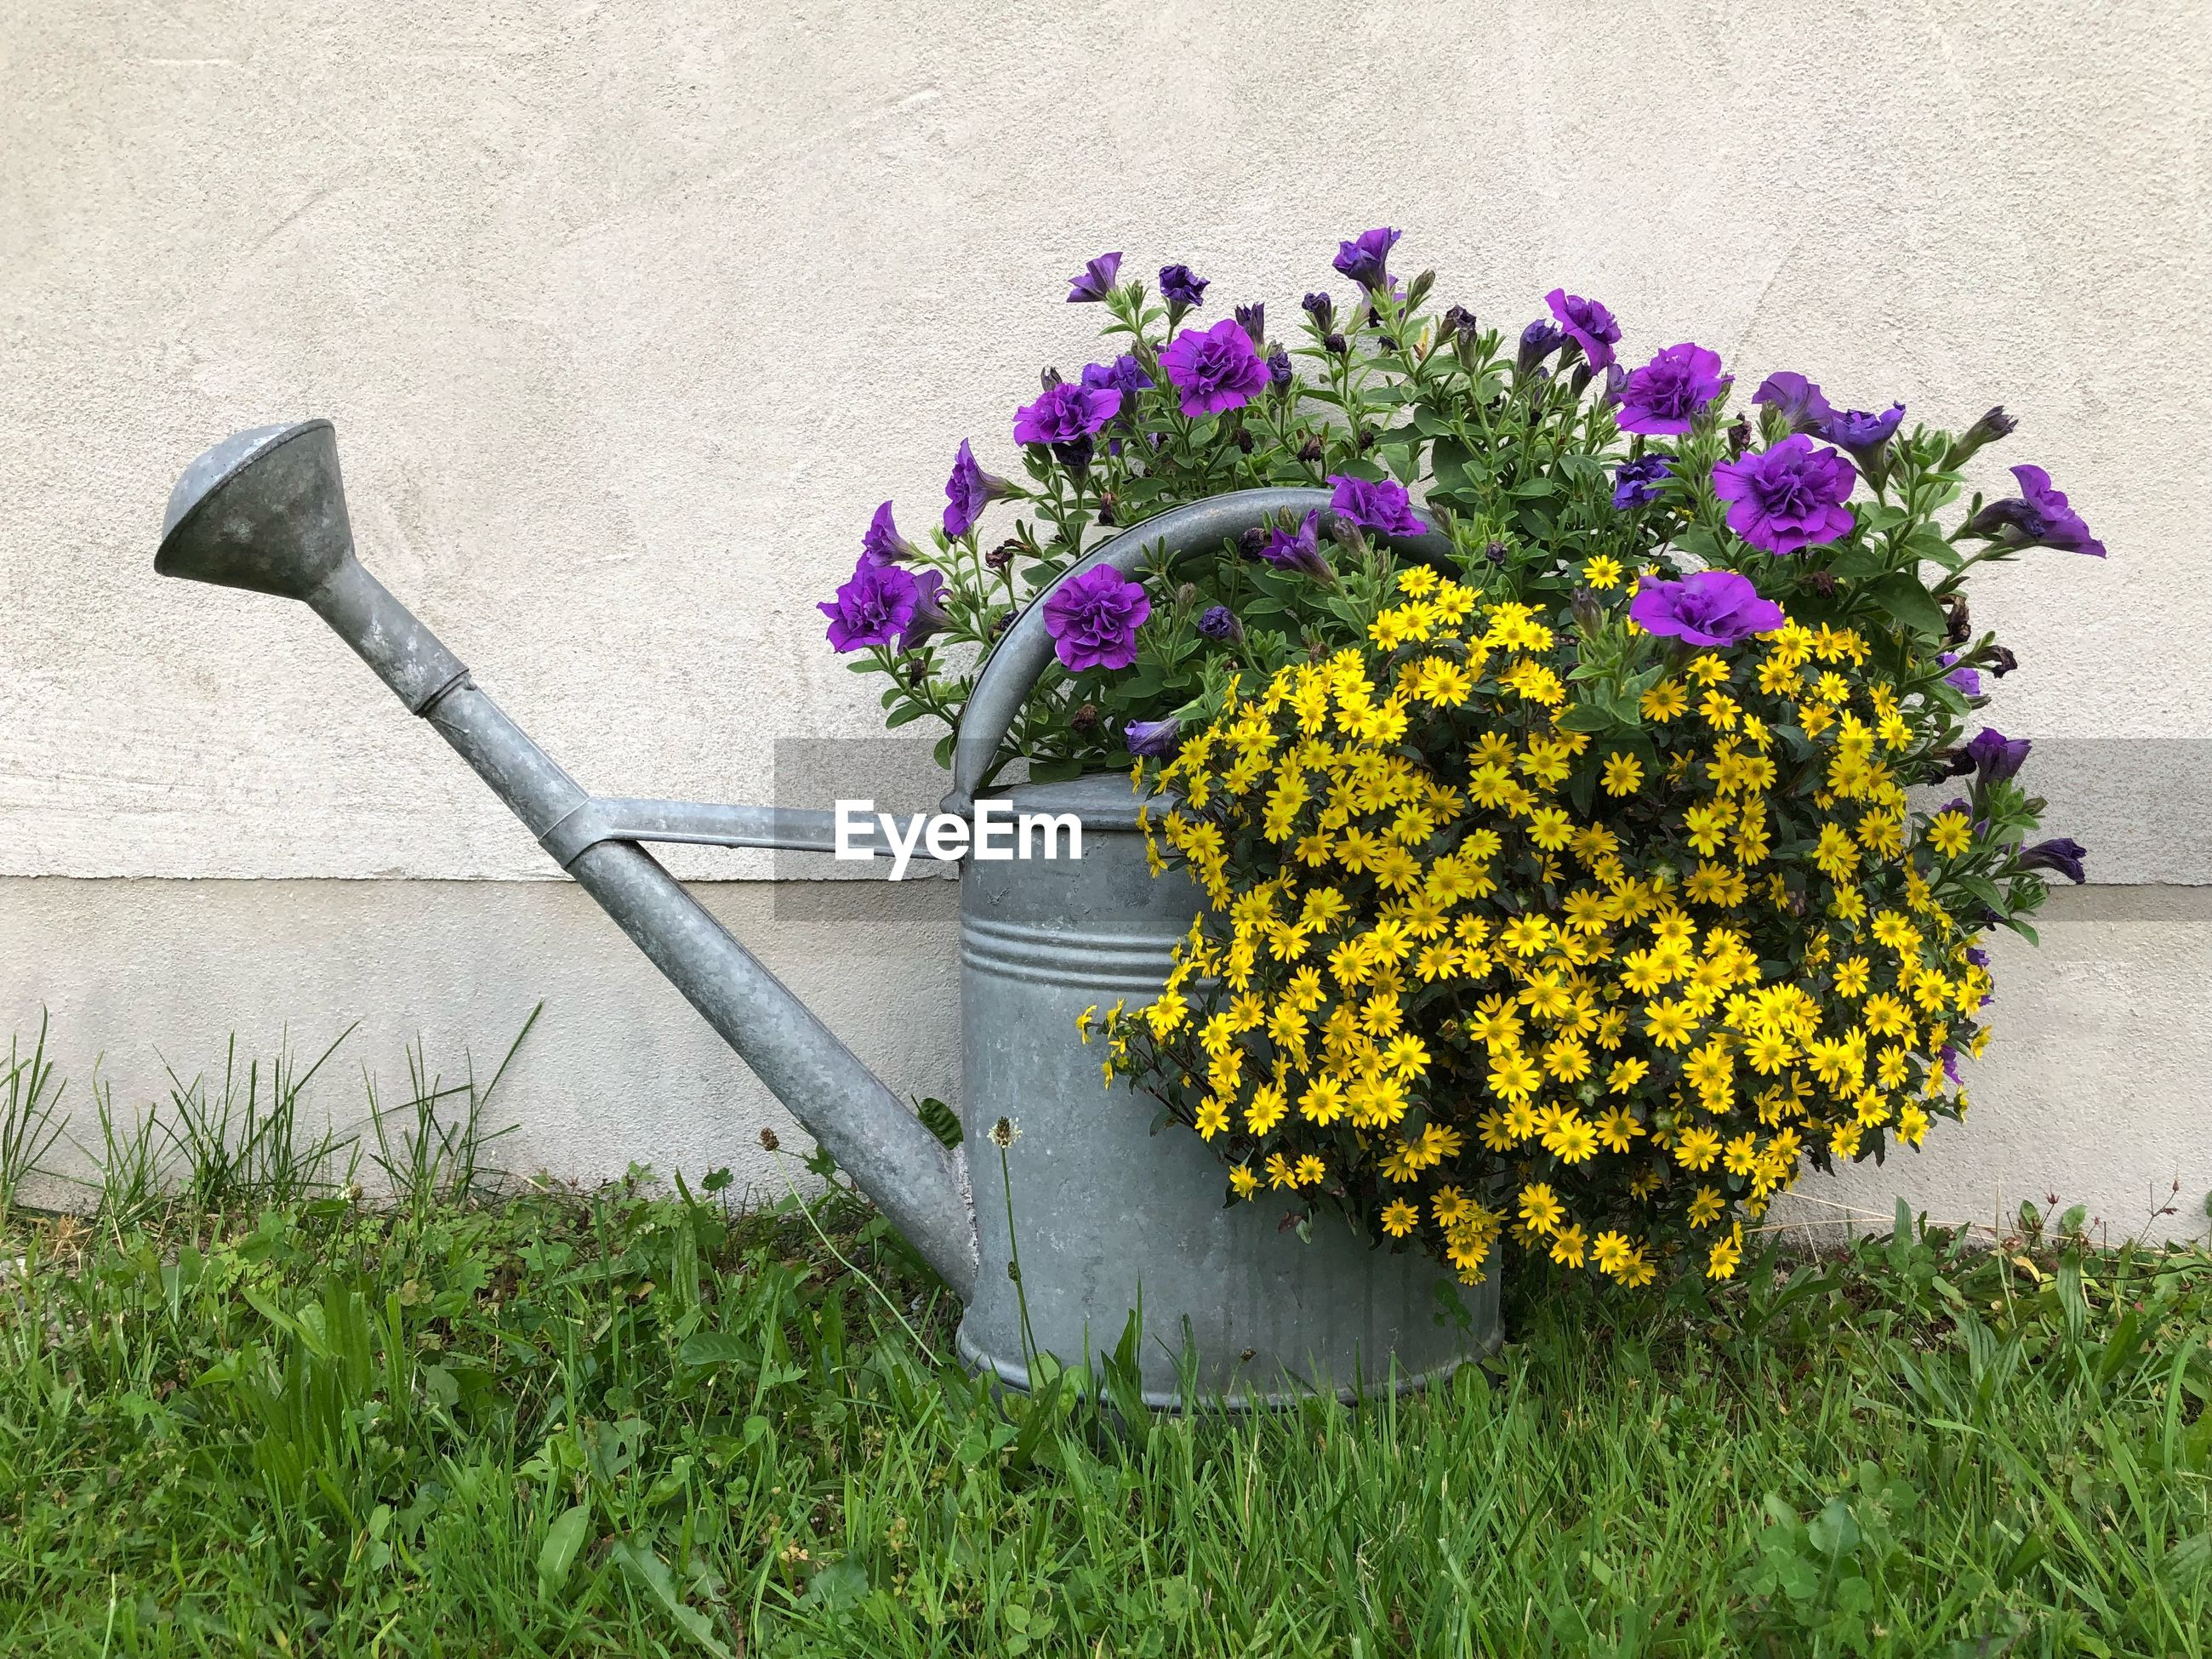 Flowers and watering cane on lawn